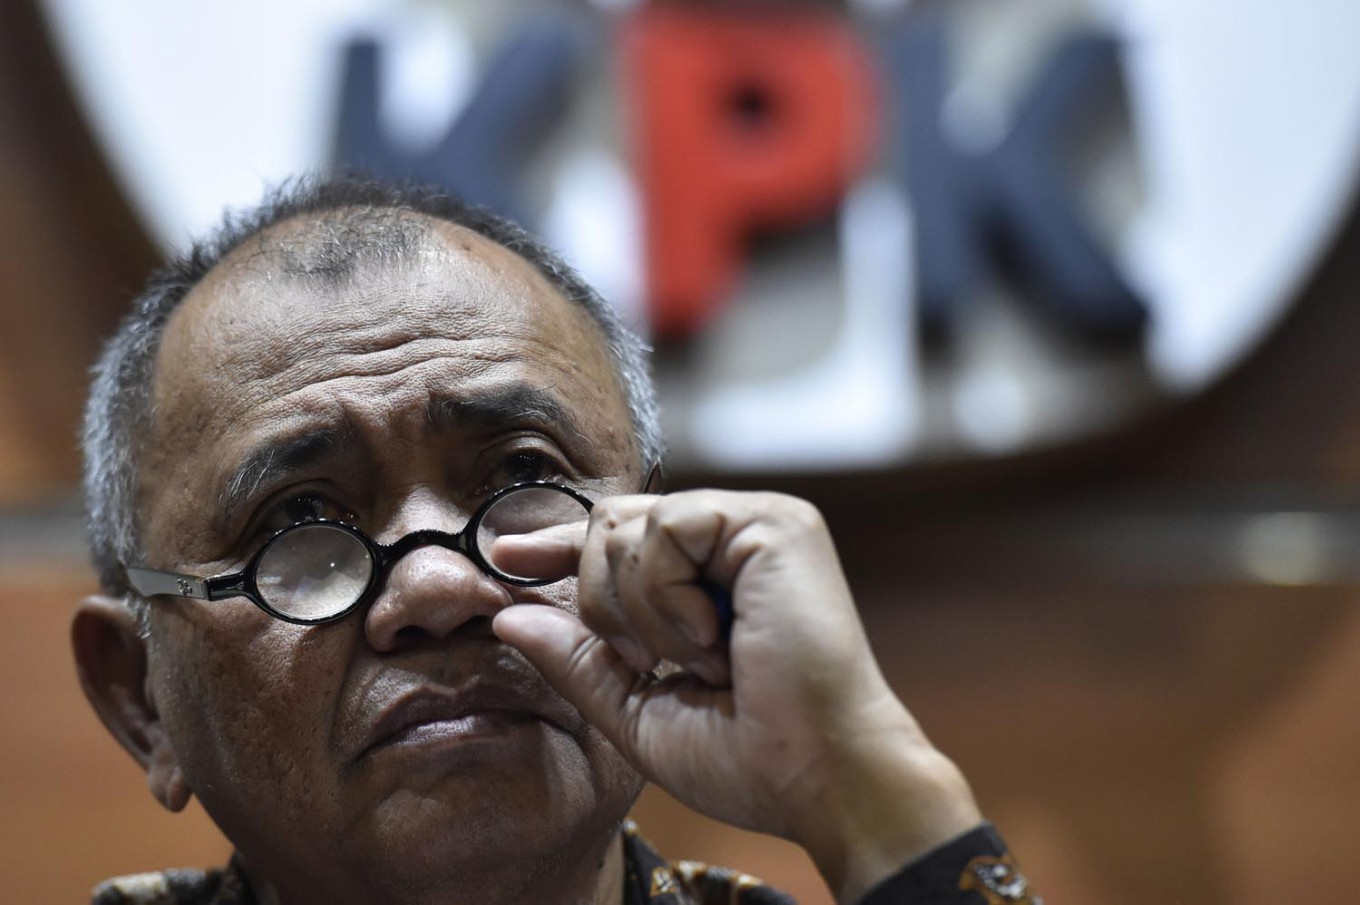 KPK arrests nine people, including House member, in Jakarta